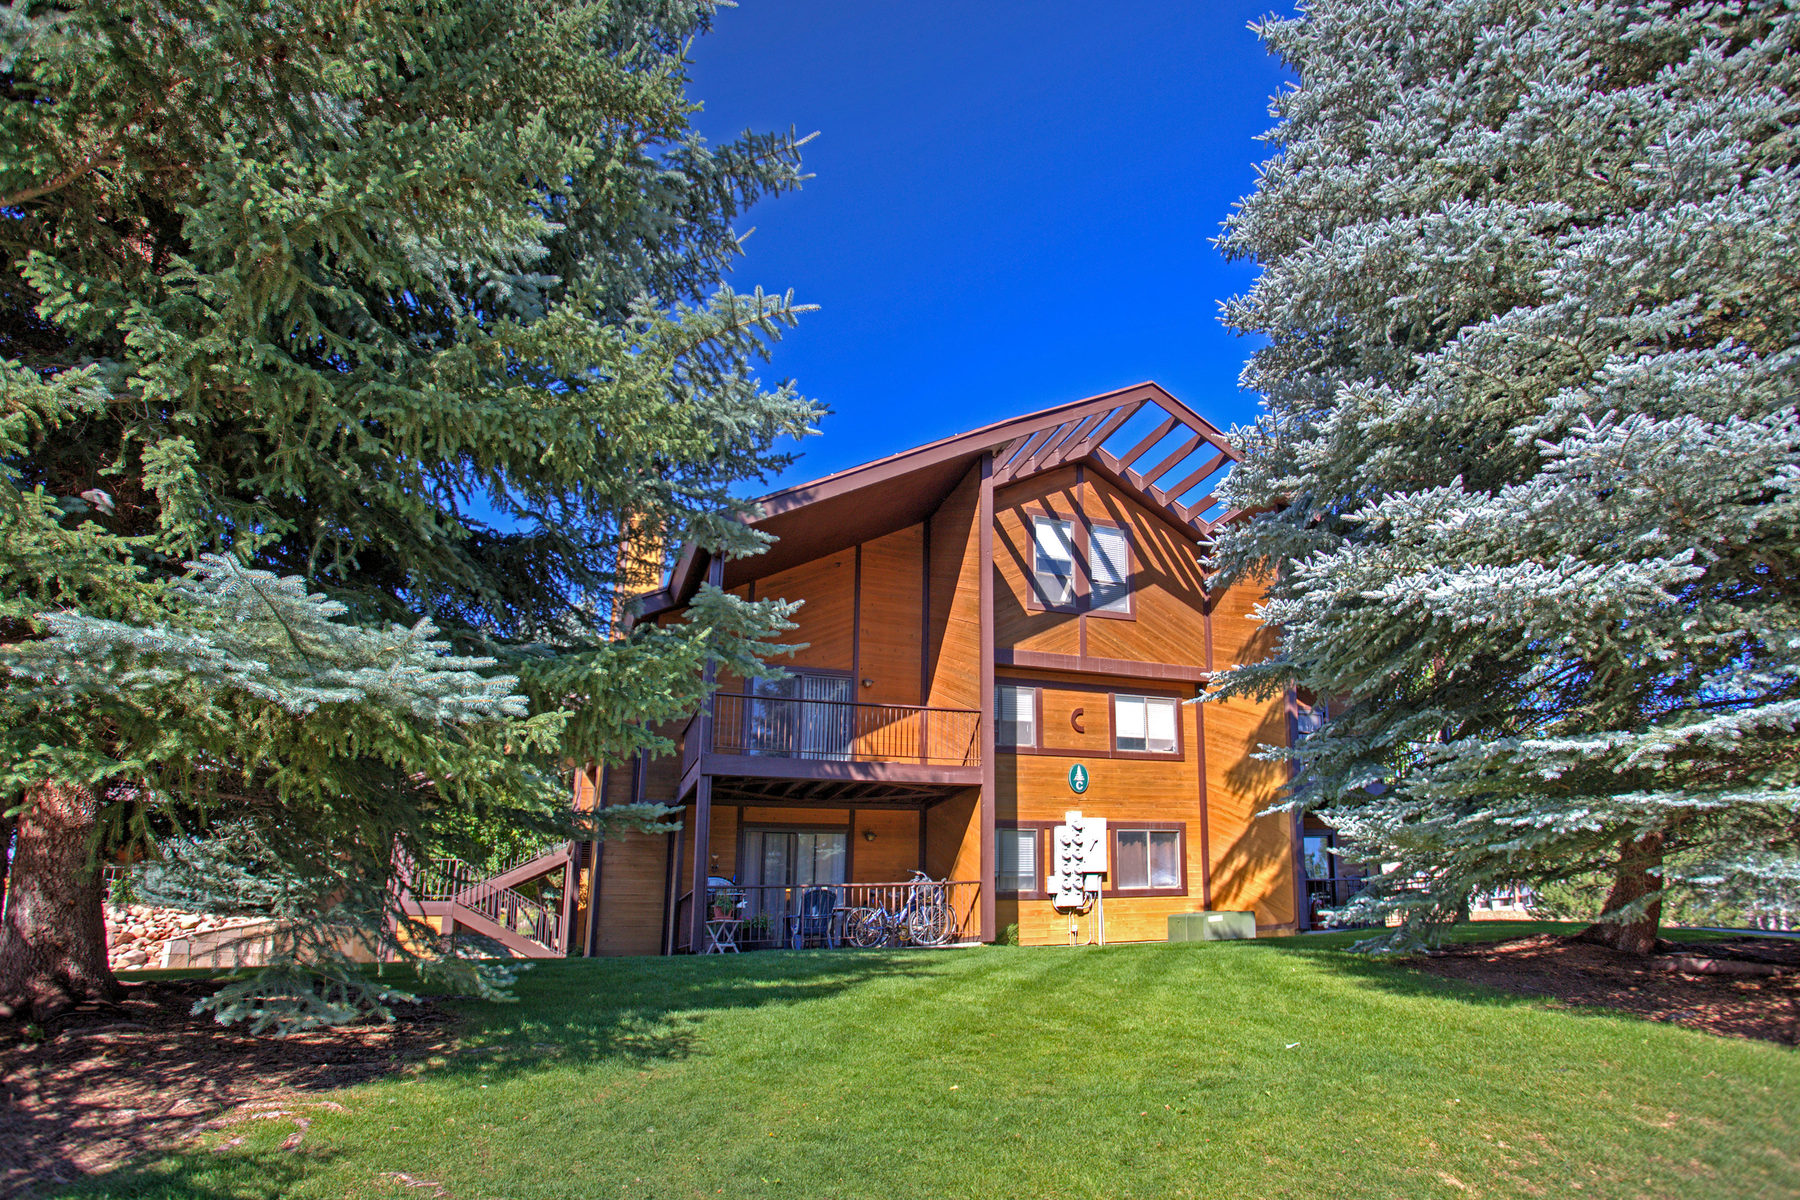 Maison unifamiliale pour l Vente à Rarely Available Red Pine at Canyons 2025 Canyon Resort Dr #C8 Park City, Utah 84098 États-Unis